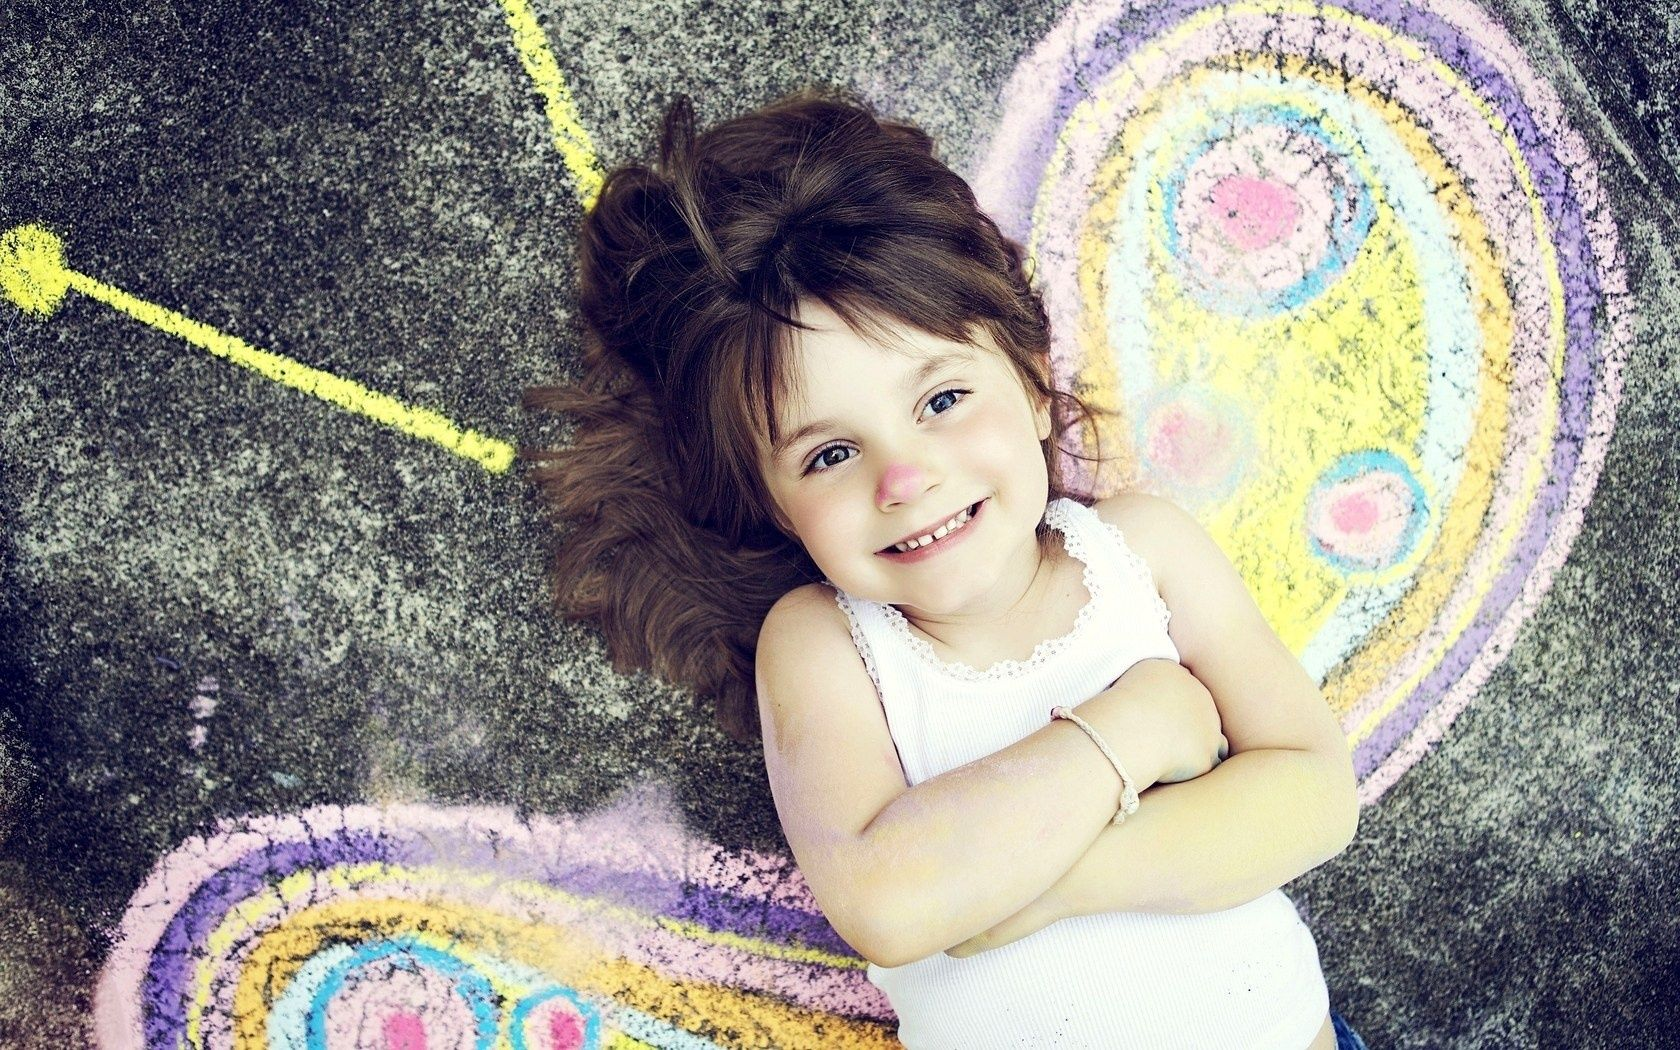 Salut wish you as happy girl smiling butterfly keep fighting